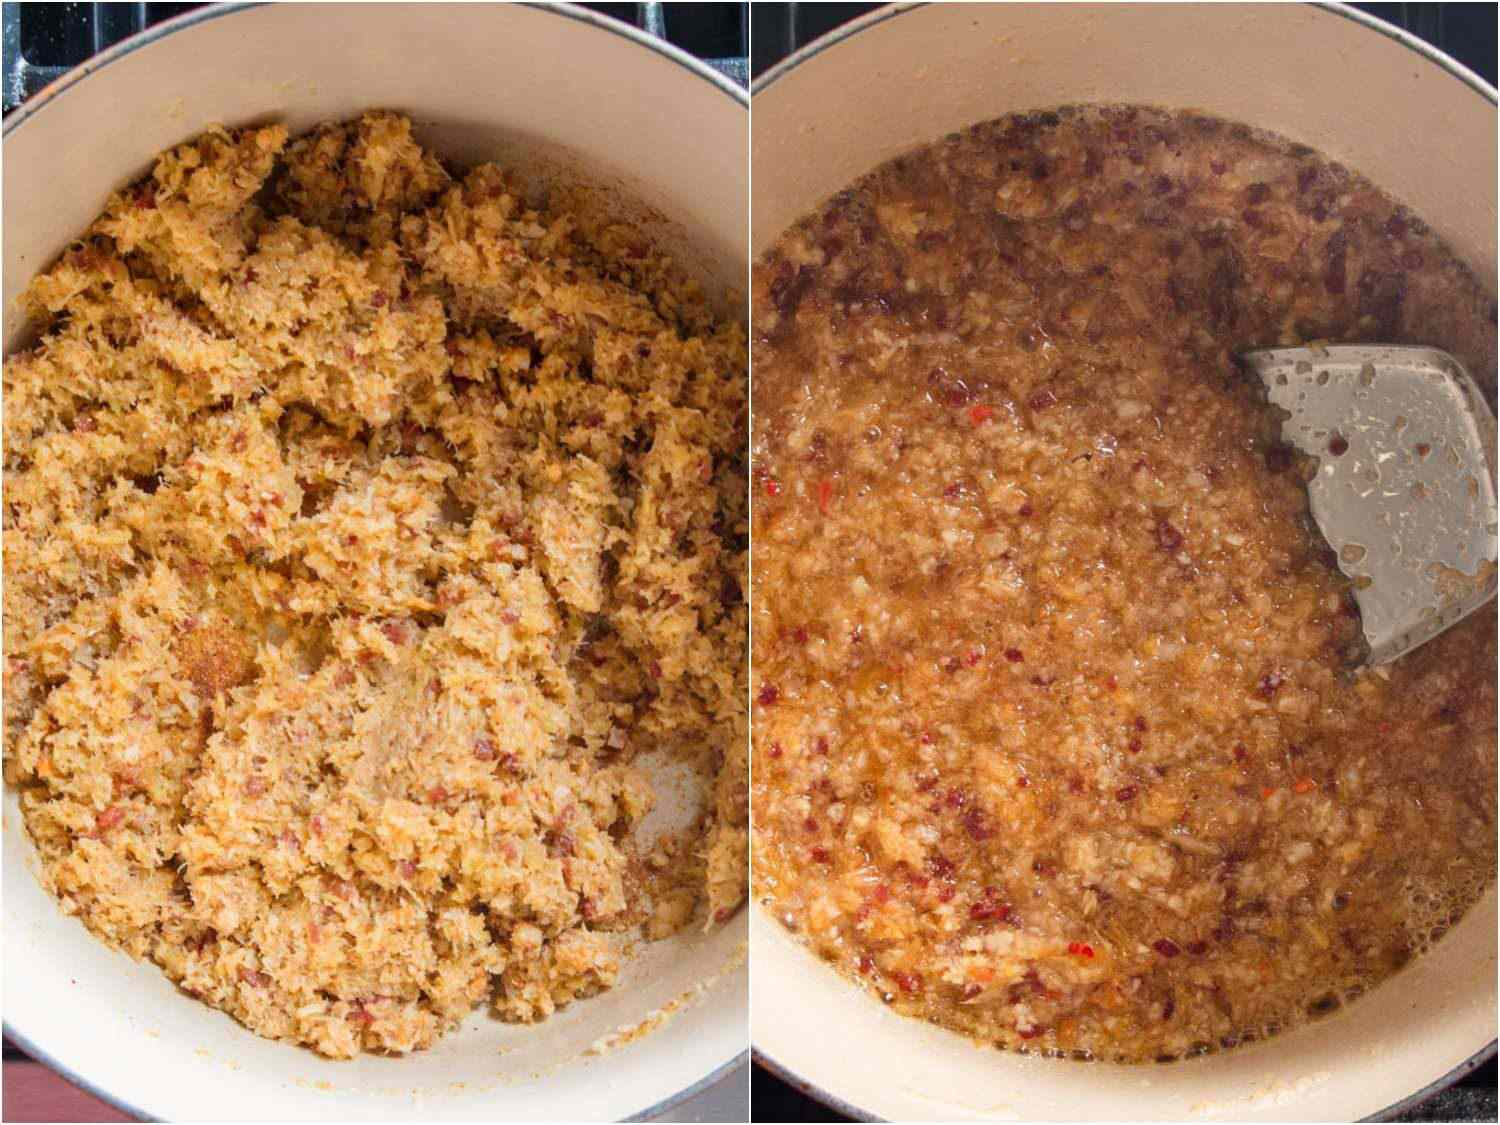 Comparison of two versions of XO sauce cooking in a Dutch oven.